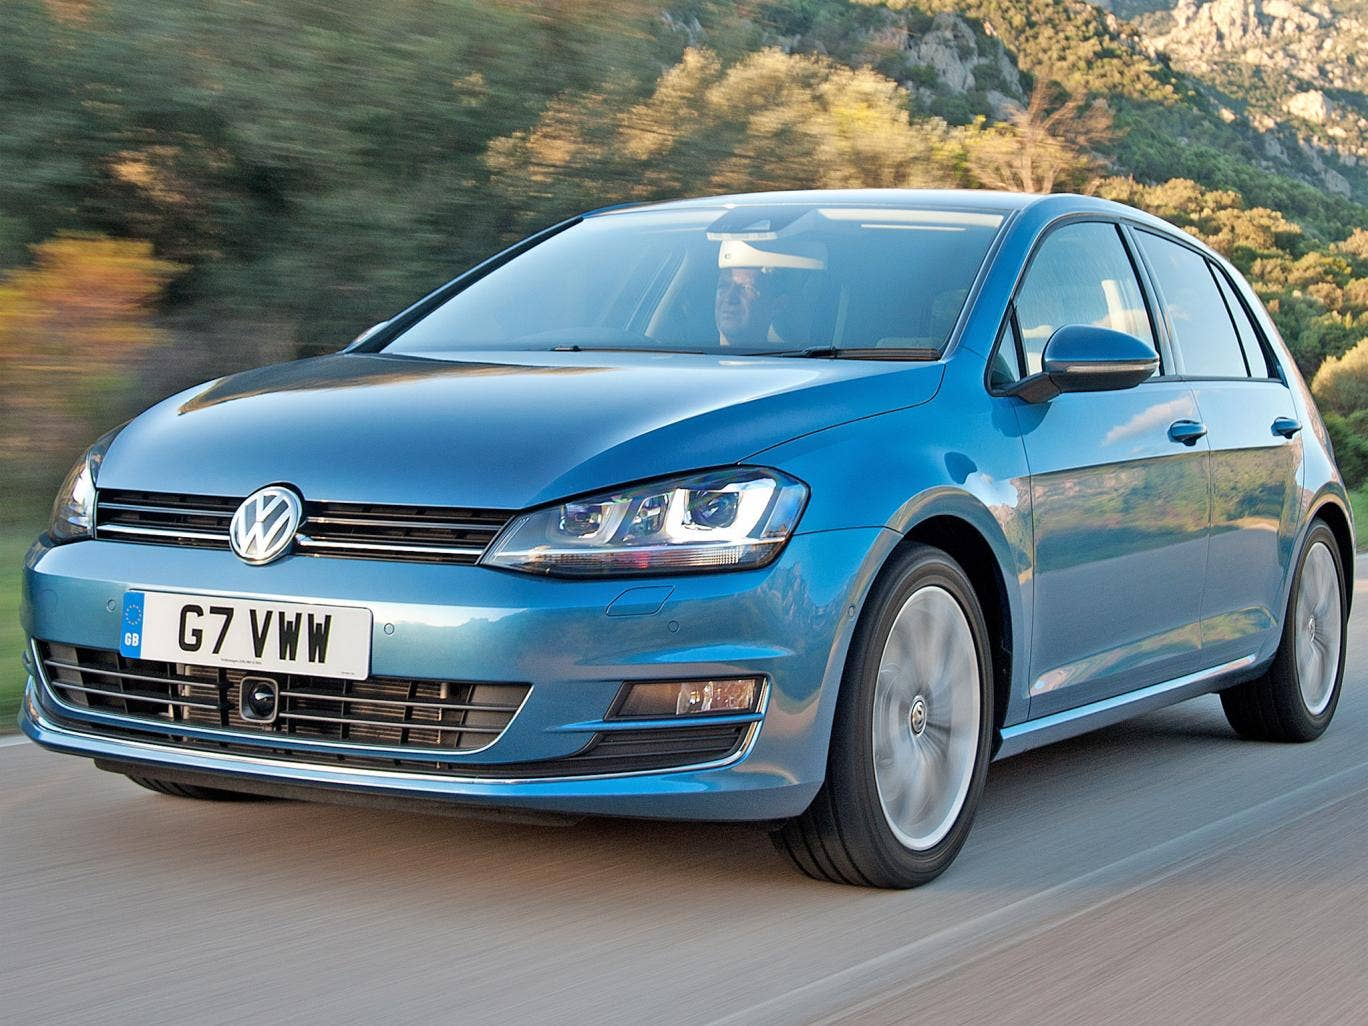 Car of the year? The new VW Golf